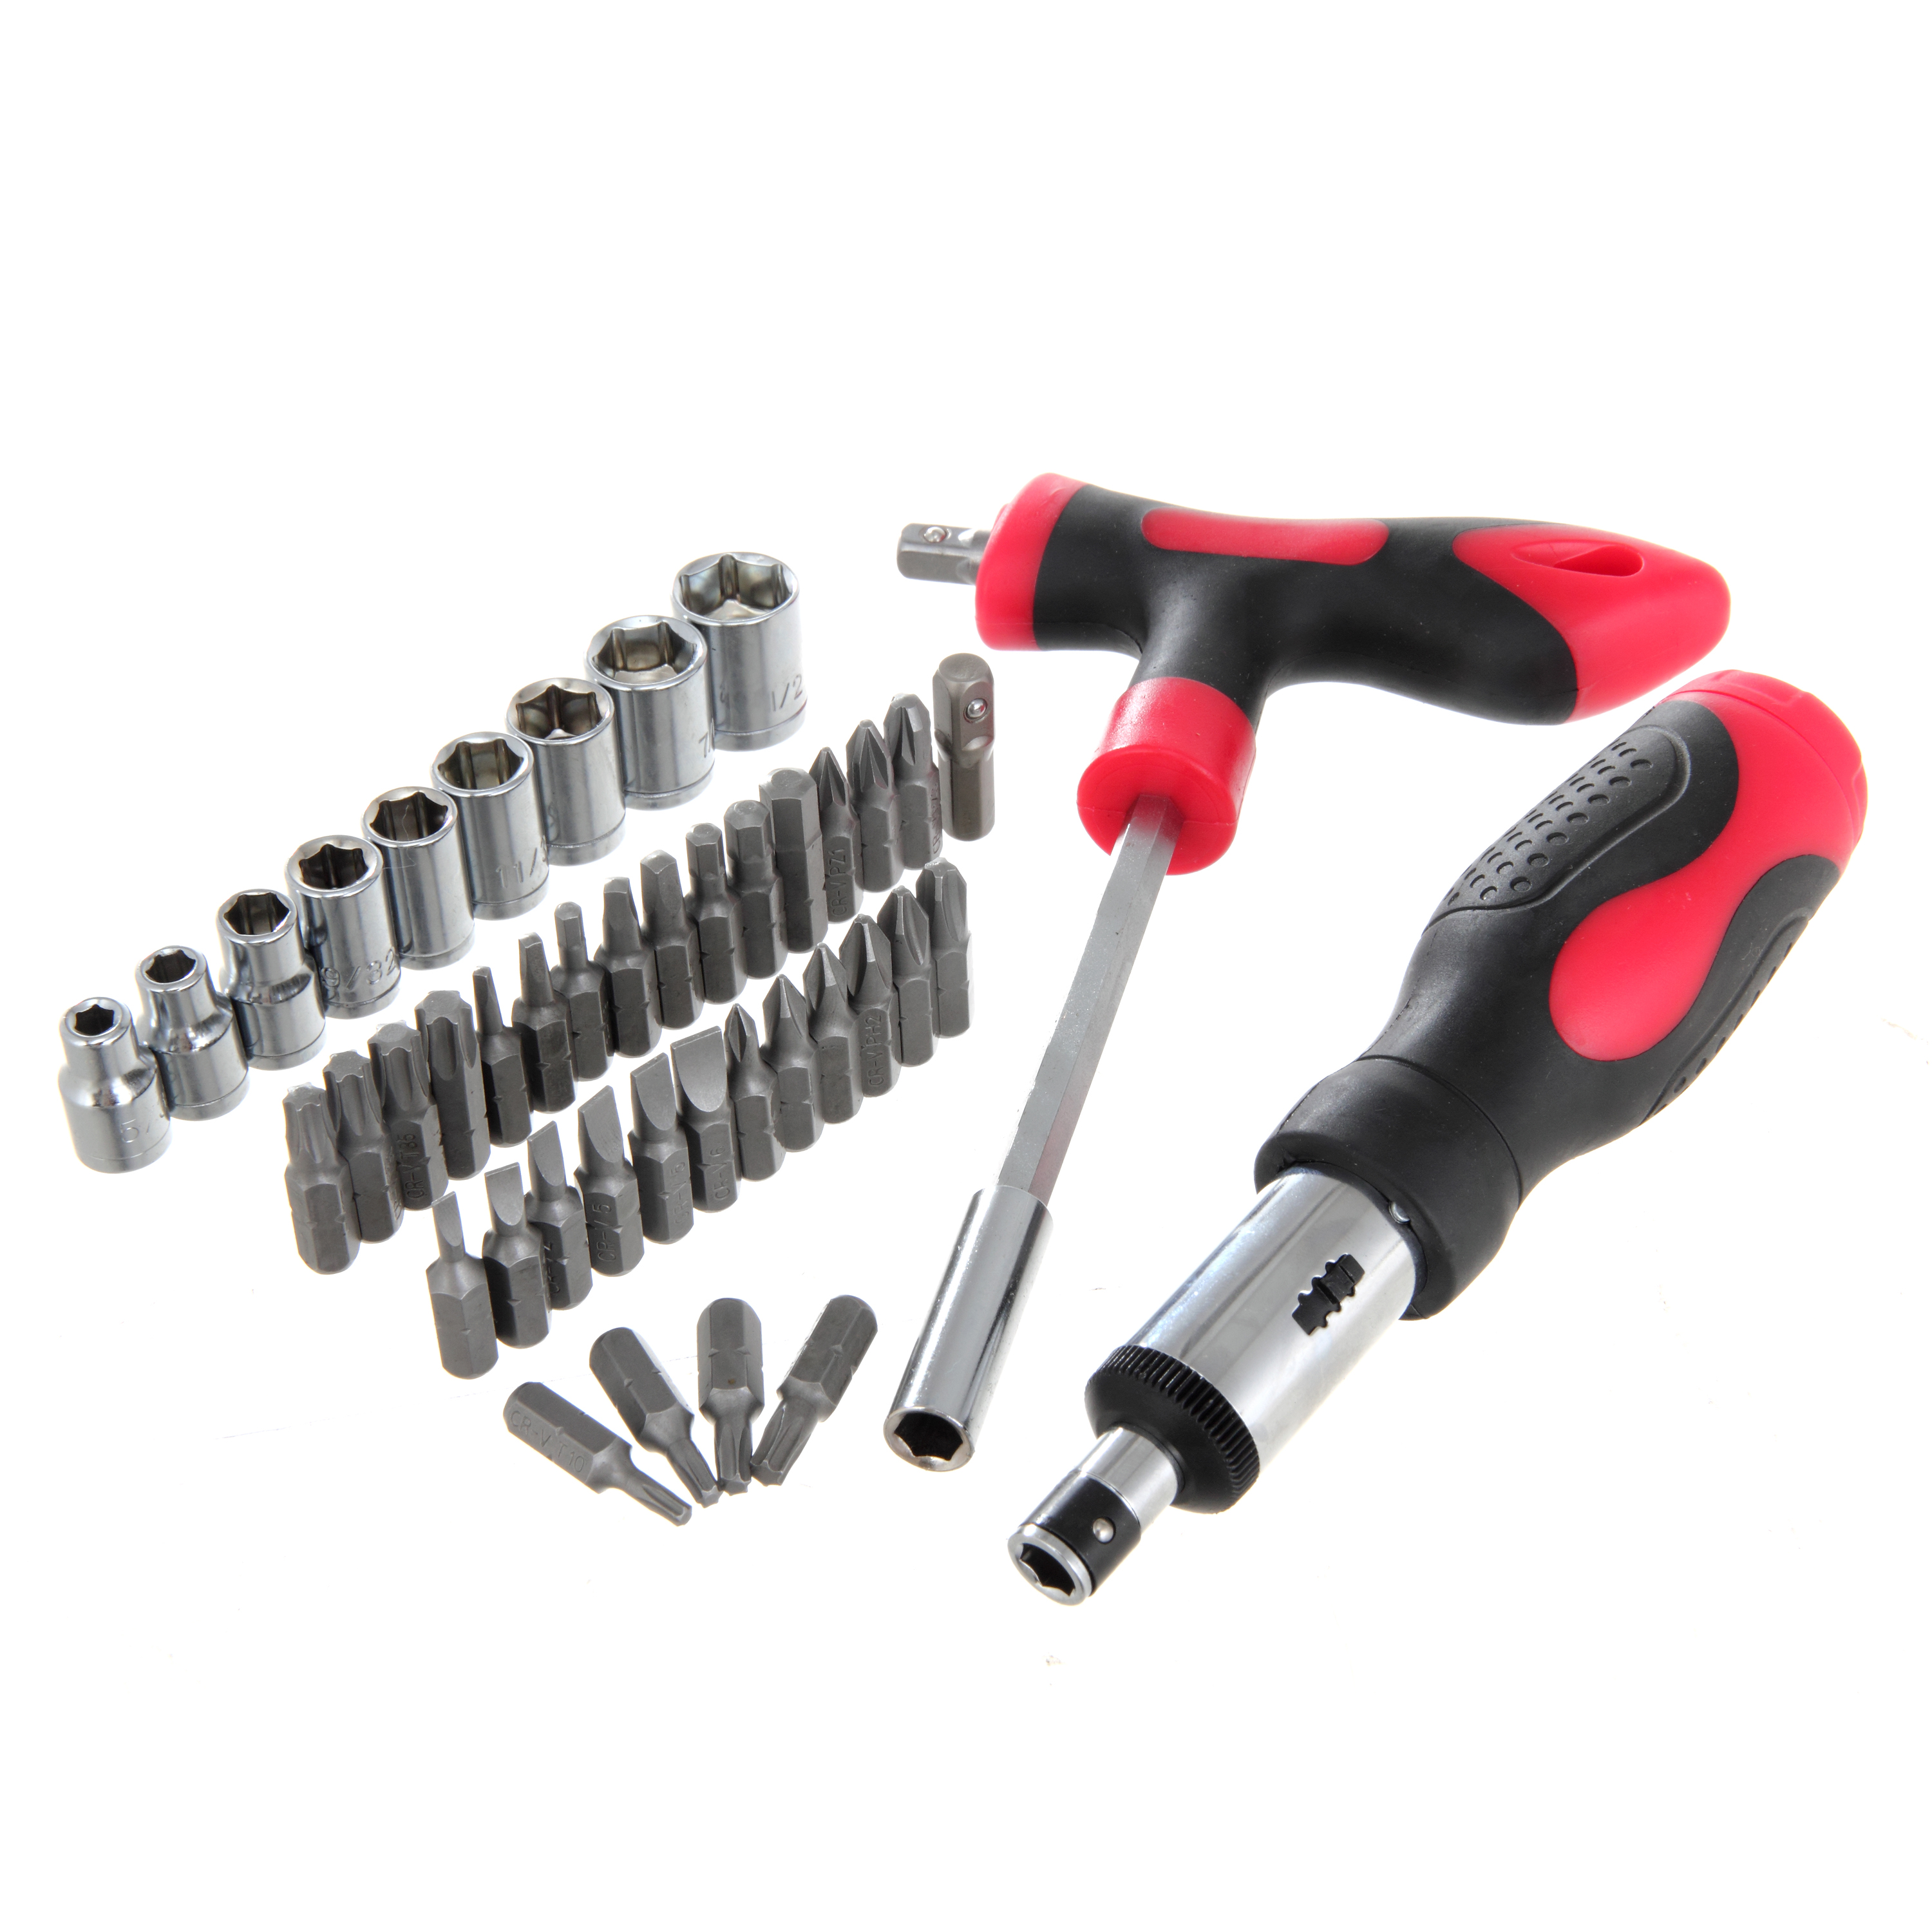 Hyper Tough TS99815R 43-Piece Socket Screwdriver Set with Case